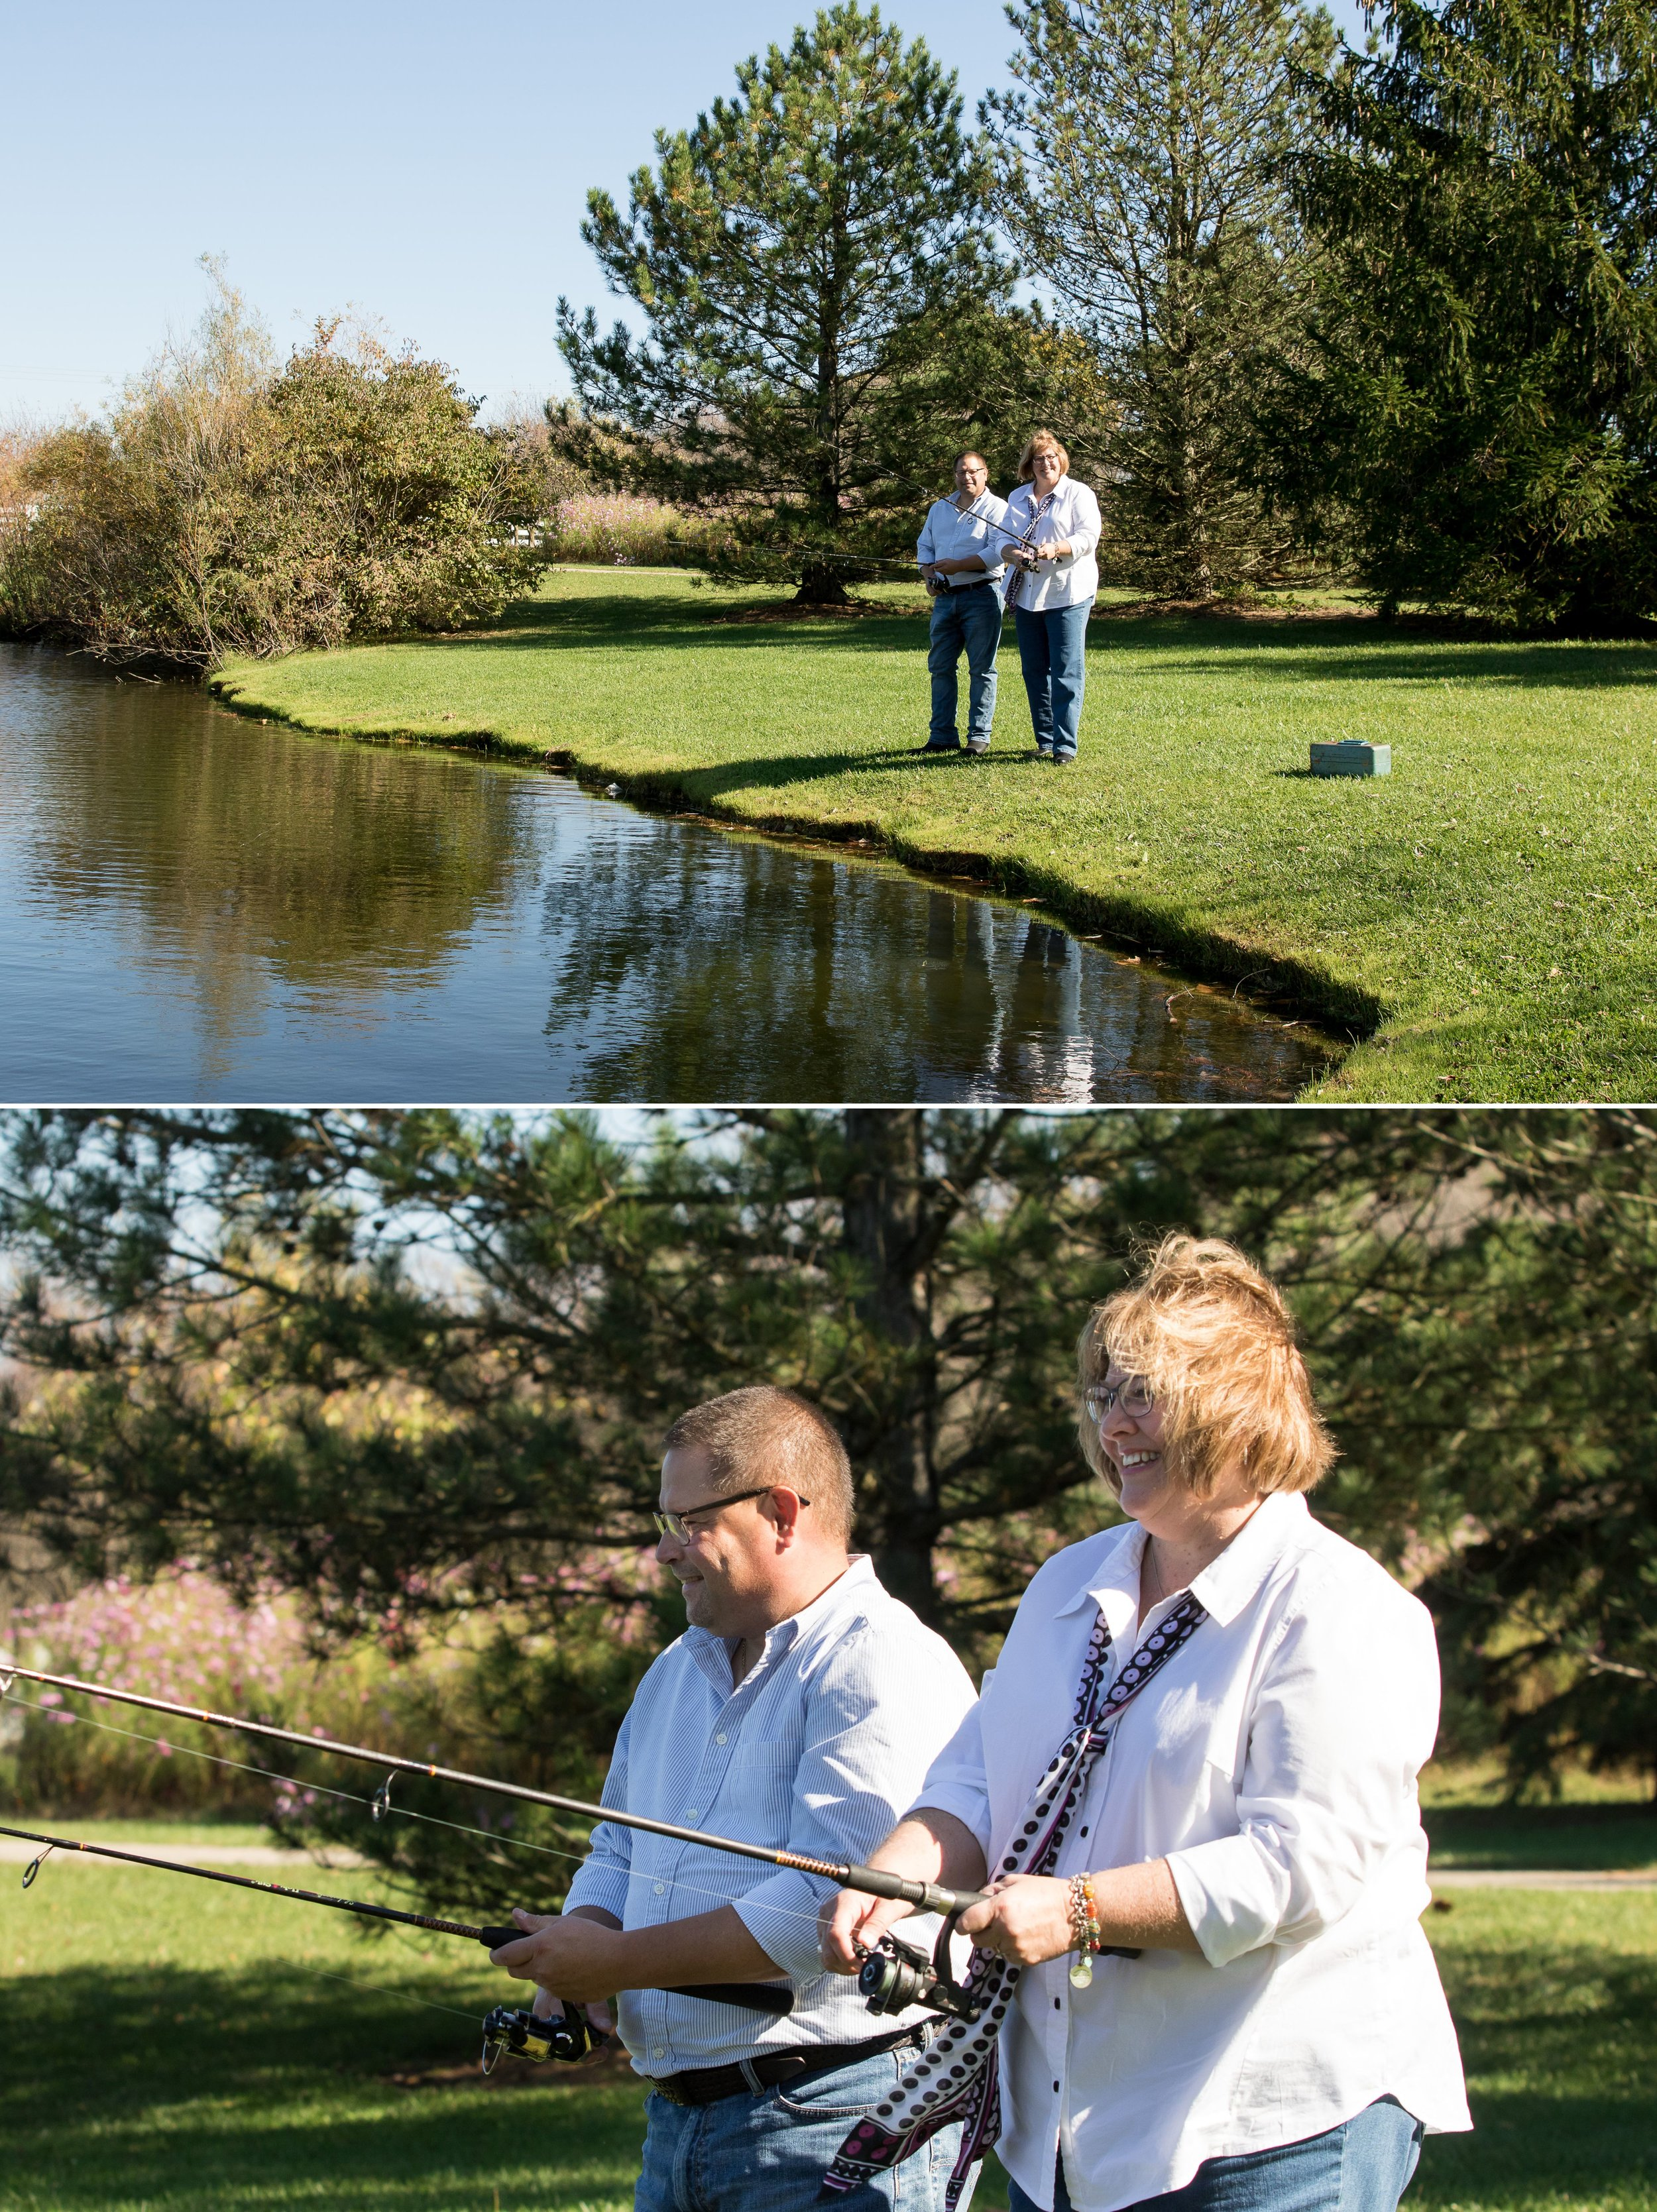 Homestead-Park-Hilliard-Columbus-Ohio-Engagment-Session-Fishing-Theme-Muschlitz-Photography-004.JPG